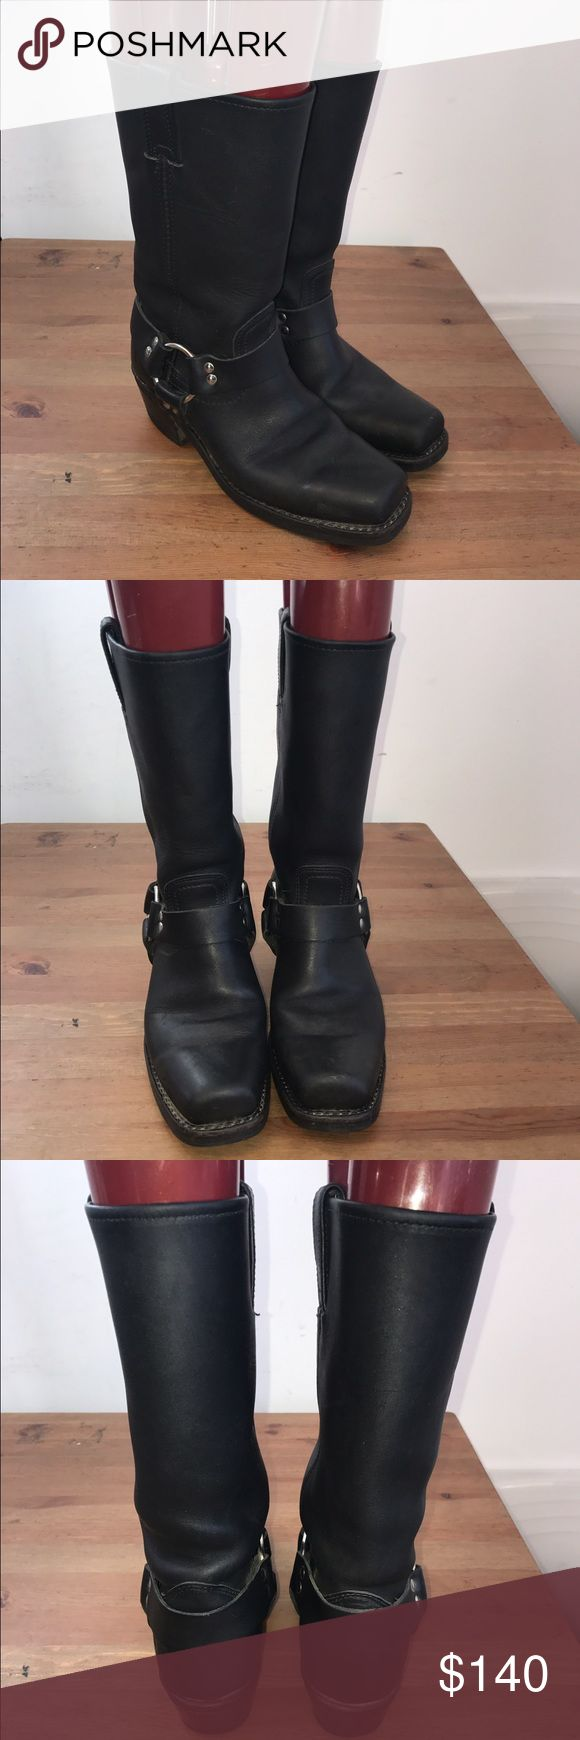 Frye Harness Boots Sz:7.5m These shoes are in excellent condition. Guaranteed authentic item. And a must have item! We are unable to model items or take sales to PP. No box or dust bags. Willing to negotiate. Frye Shoes Winter & Rain Boots